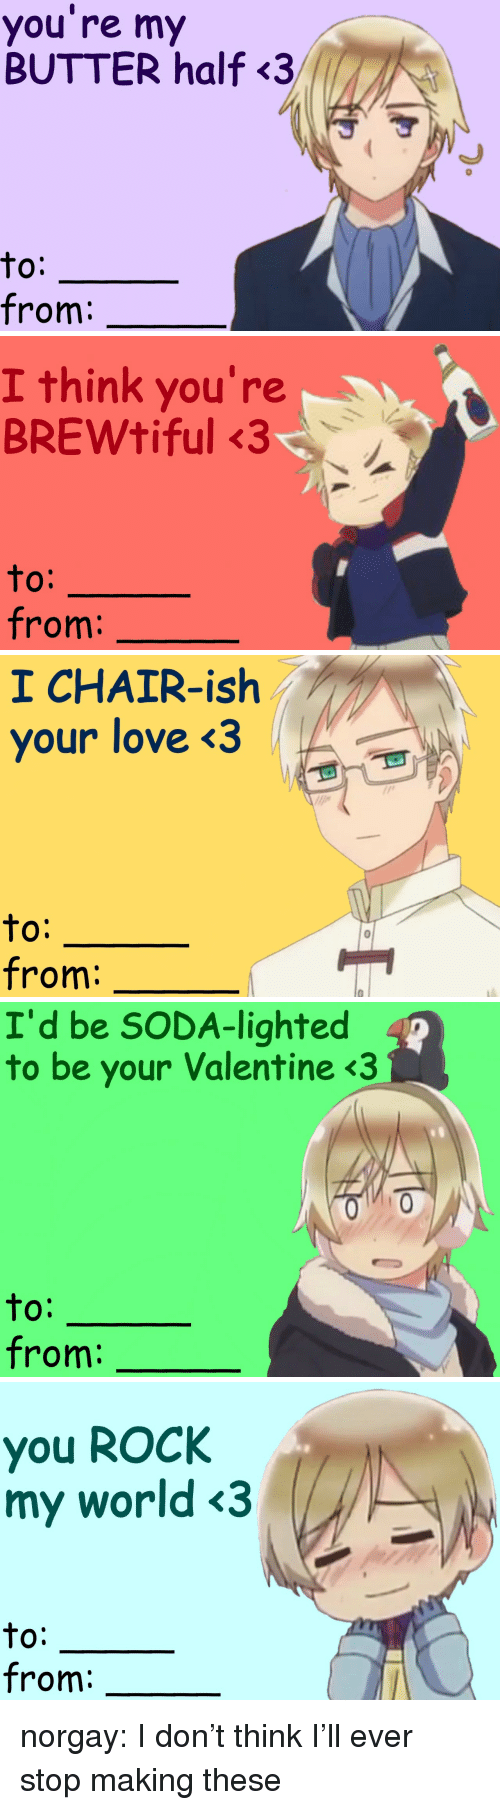 Love, Soda, and Target: you re my  BUTTER half<3  to:  from:   I think you're  BREWtiful 3  O:  from   1 CHAIR-ish  your love <3  to:  from:   I'd be SODA-lighted  to be your Valentine <3  0:  from:   you ROCk  my world <3  to:  from: norgay:  I don't think I'll ever stop making these